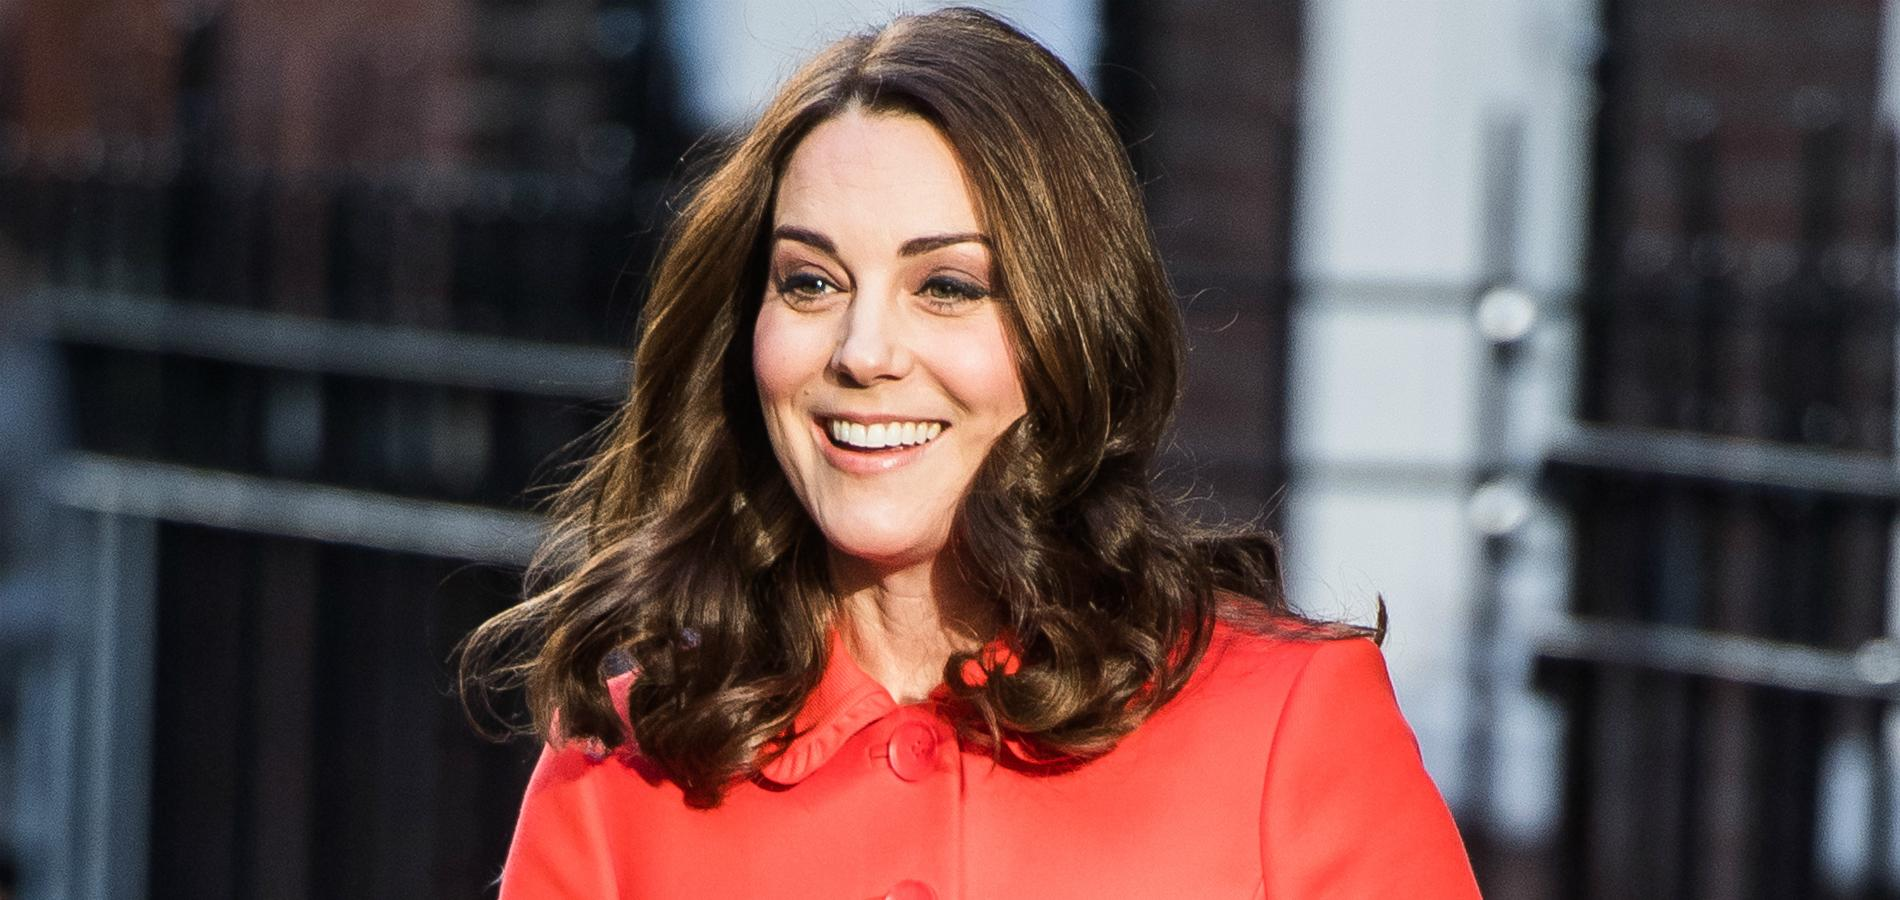 L'impressionnant dispositif derrière le brushing parfait de Kate Middleton